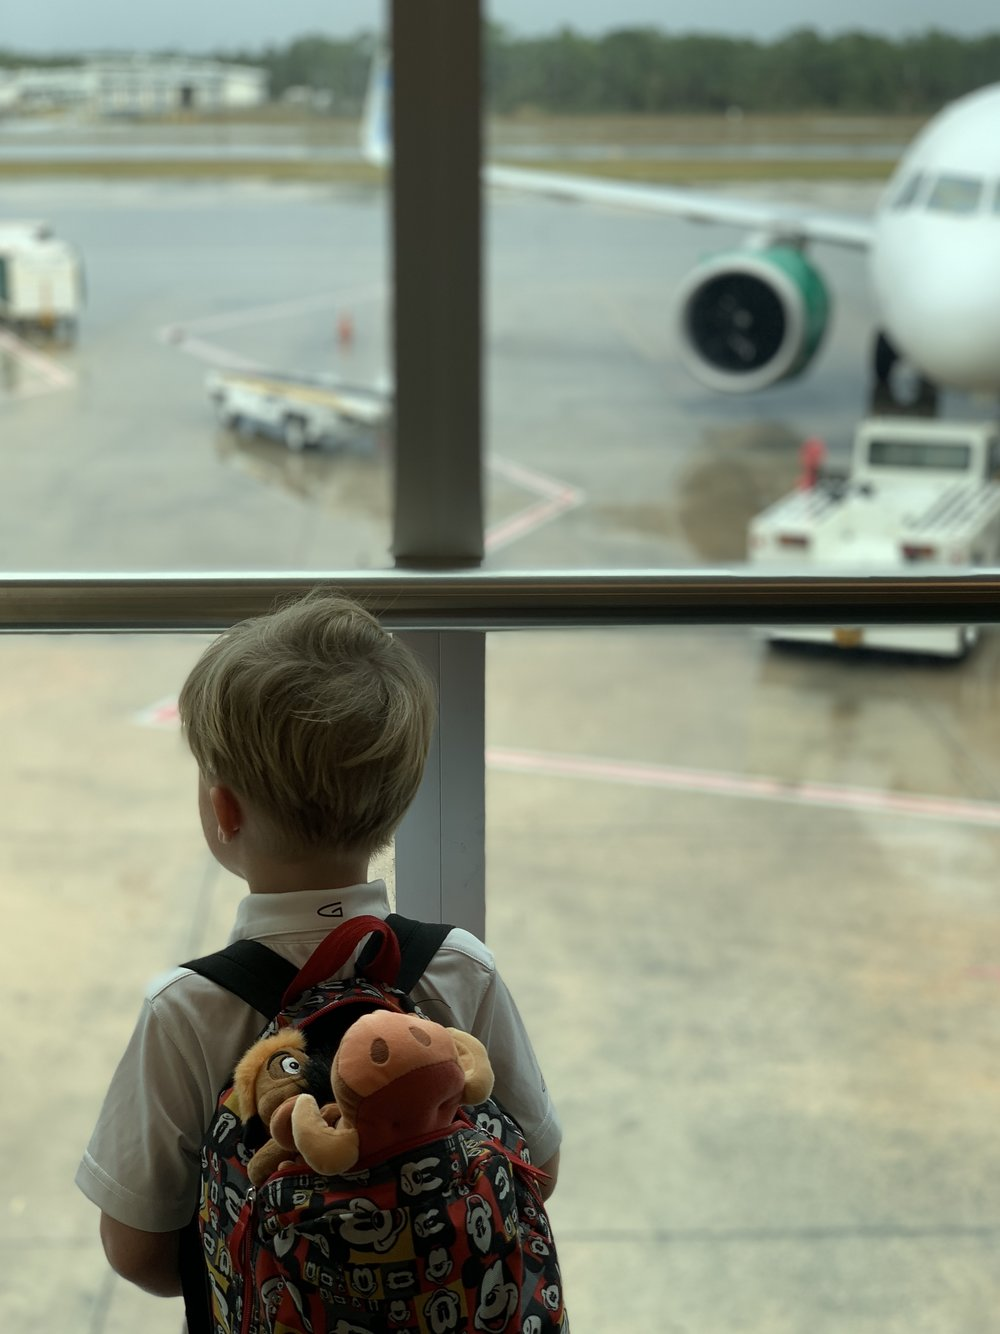 Little boy with a backpack looking at an airplane